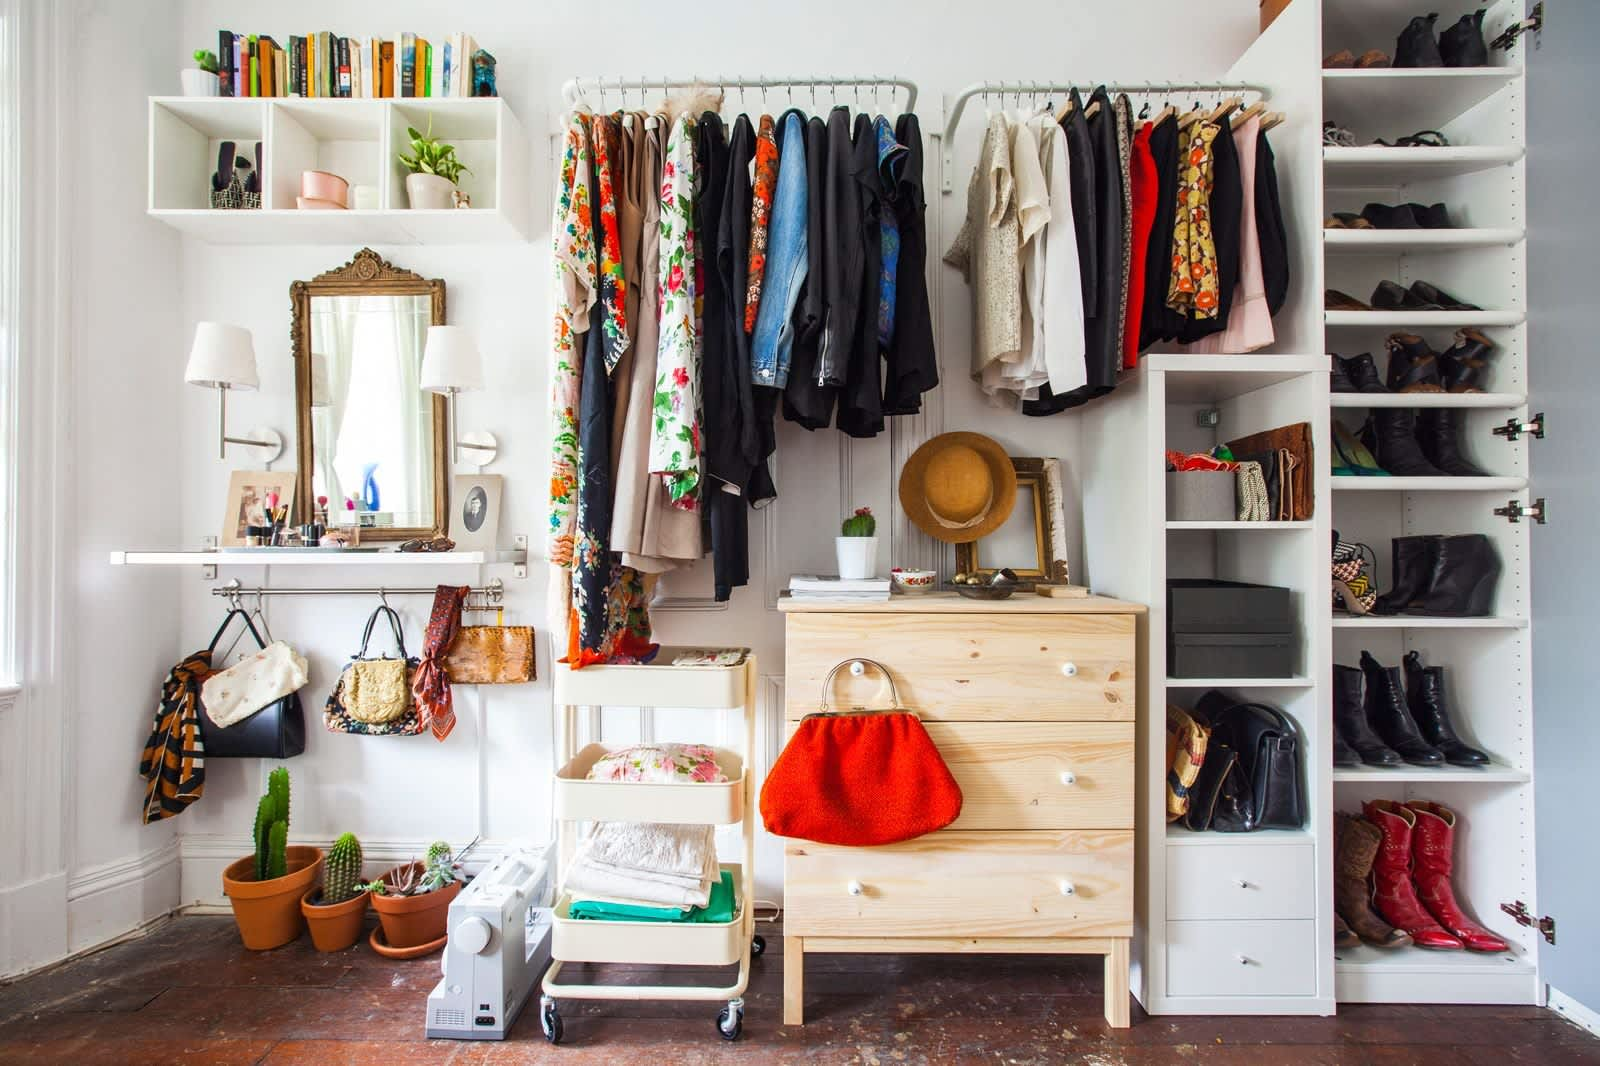 How to make room for clothes without closet apartment - Clothing storage ideas no closet ...